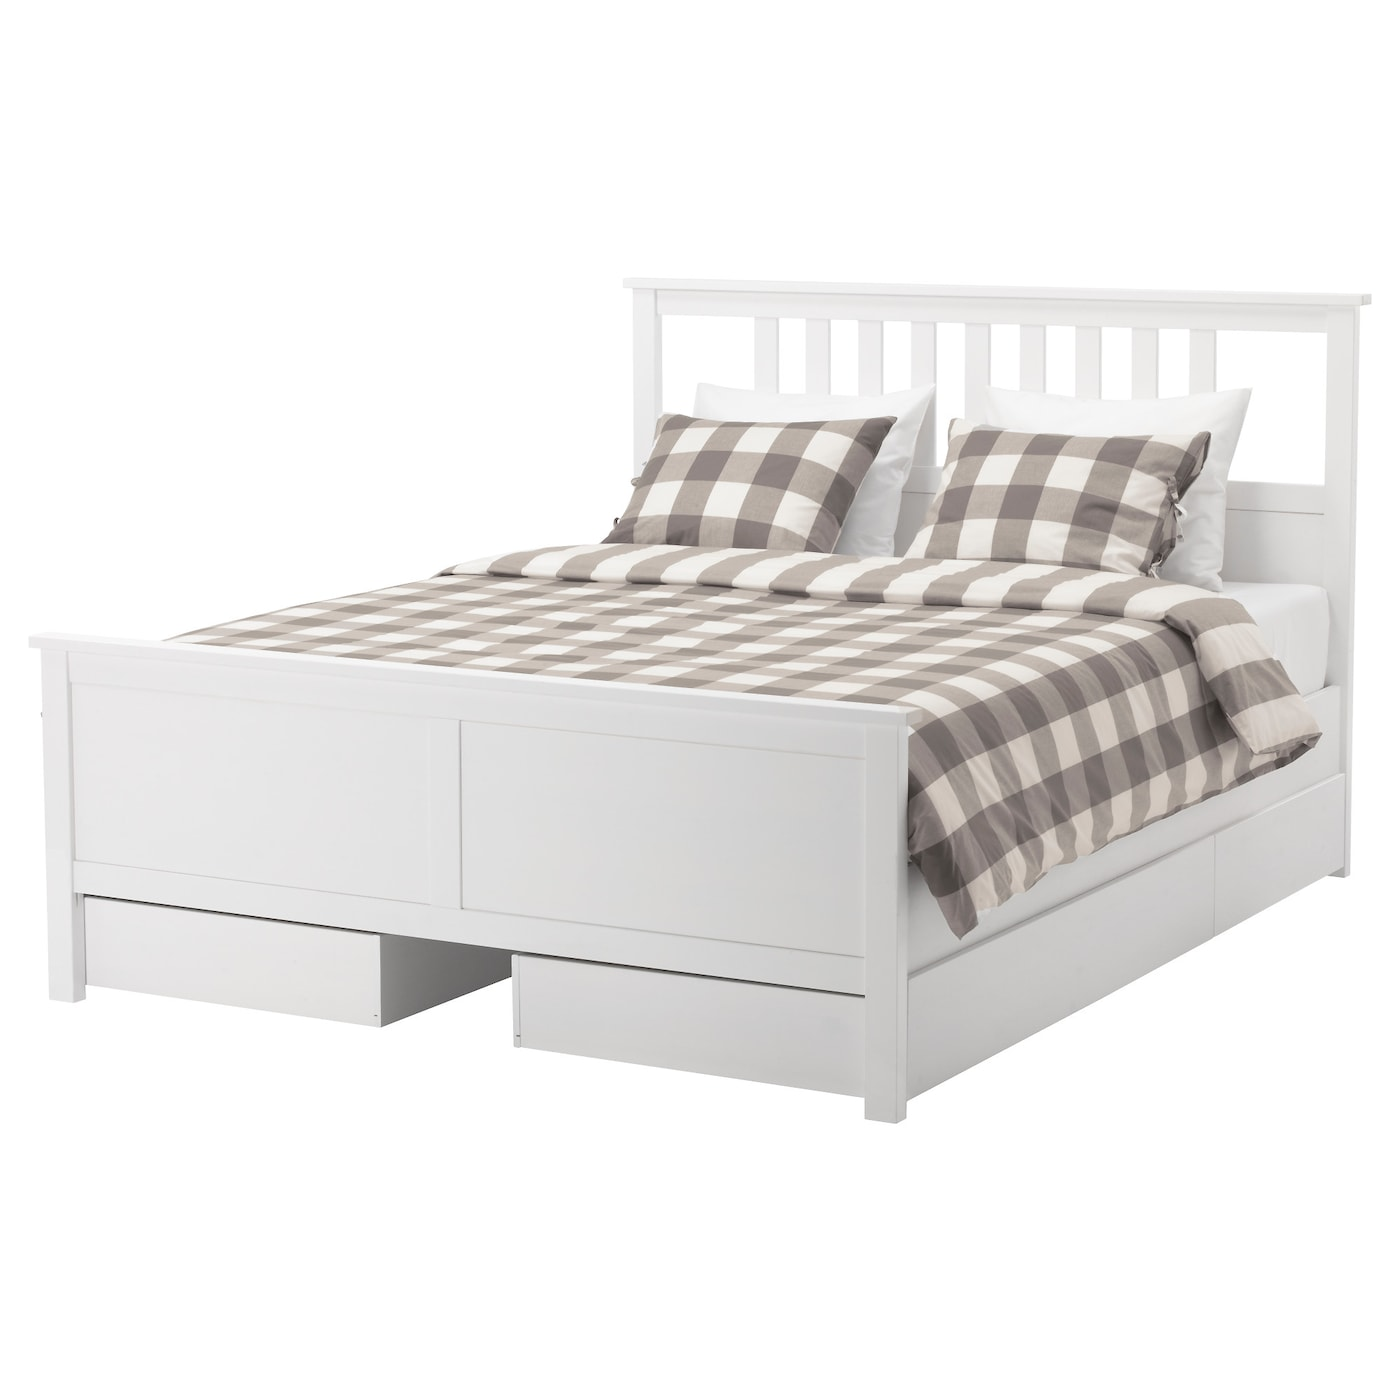 hemnes bed frame with 4 storage boxes white stain lur y. Black Bedroom Furniture Sets. Home Design Ideas